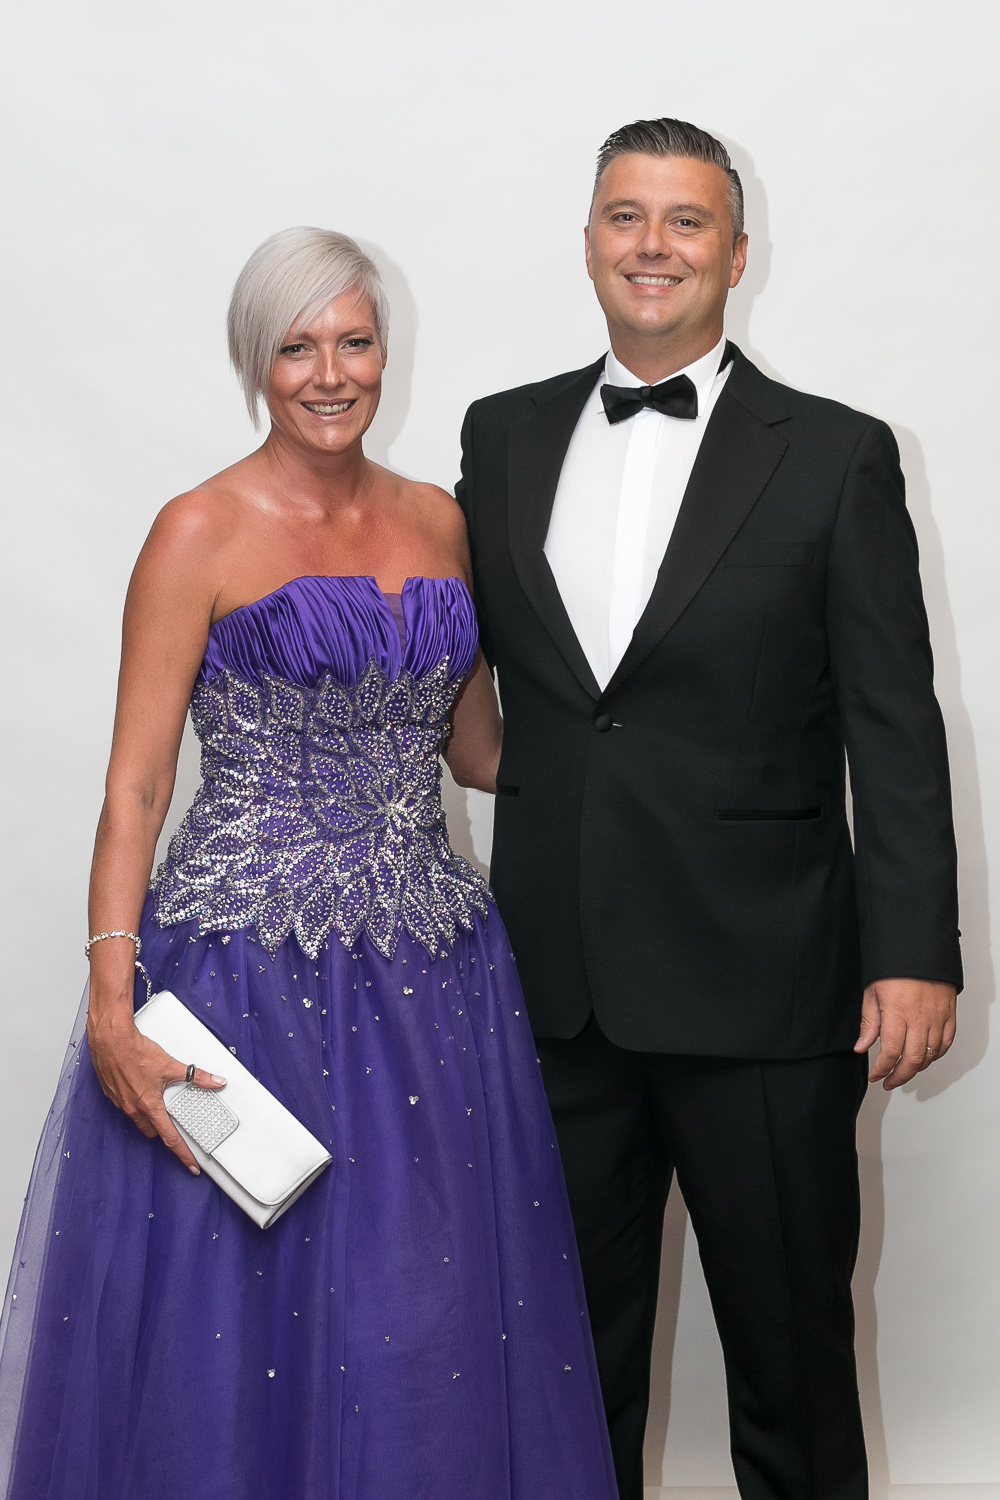 Black Tie Ball at the Imperial Hotel, Blackpool, raising money for Blackpool Vic's Cardiac Unit